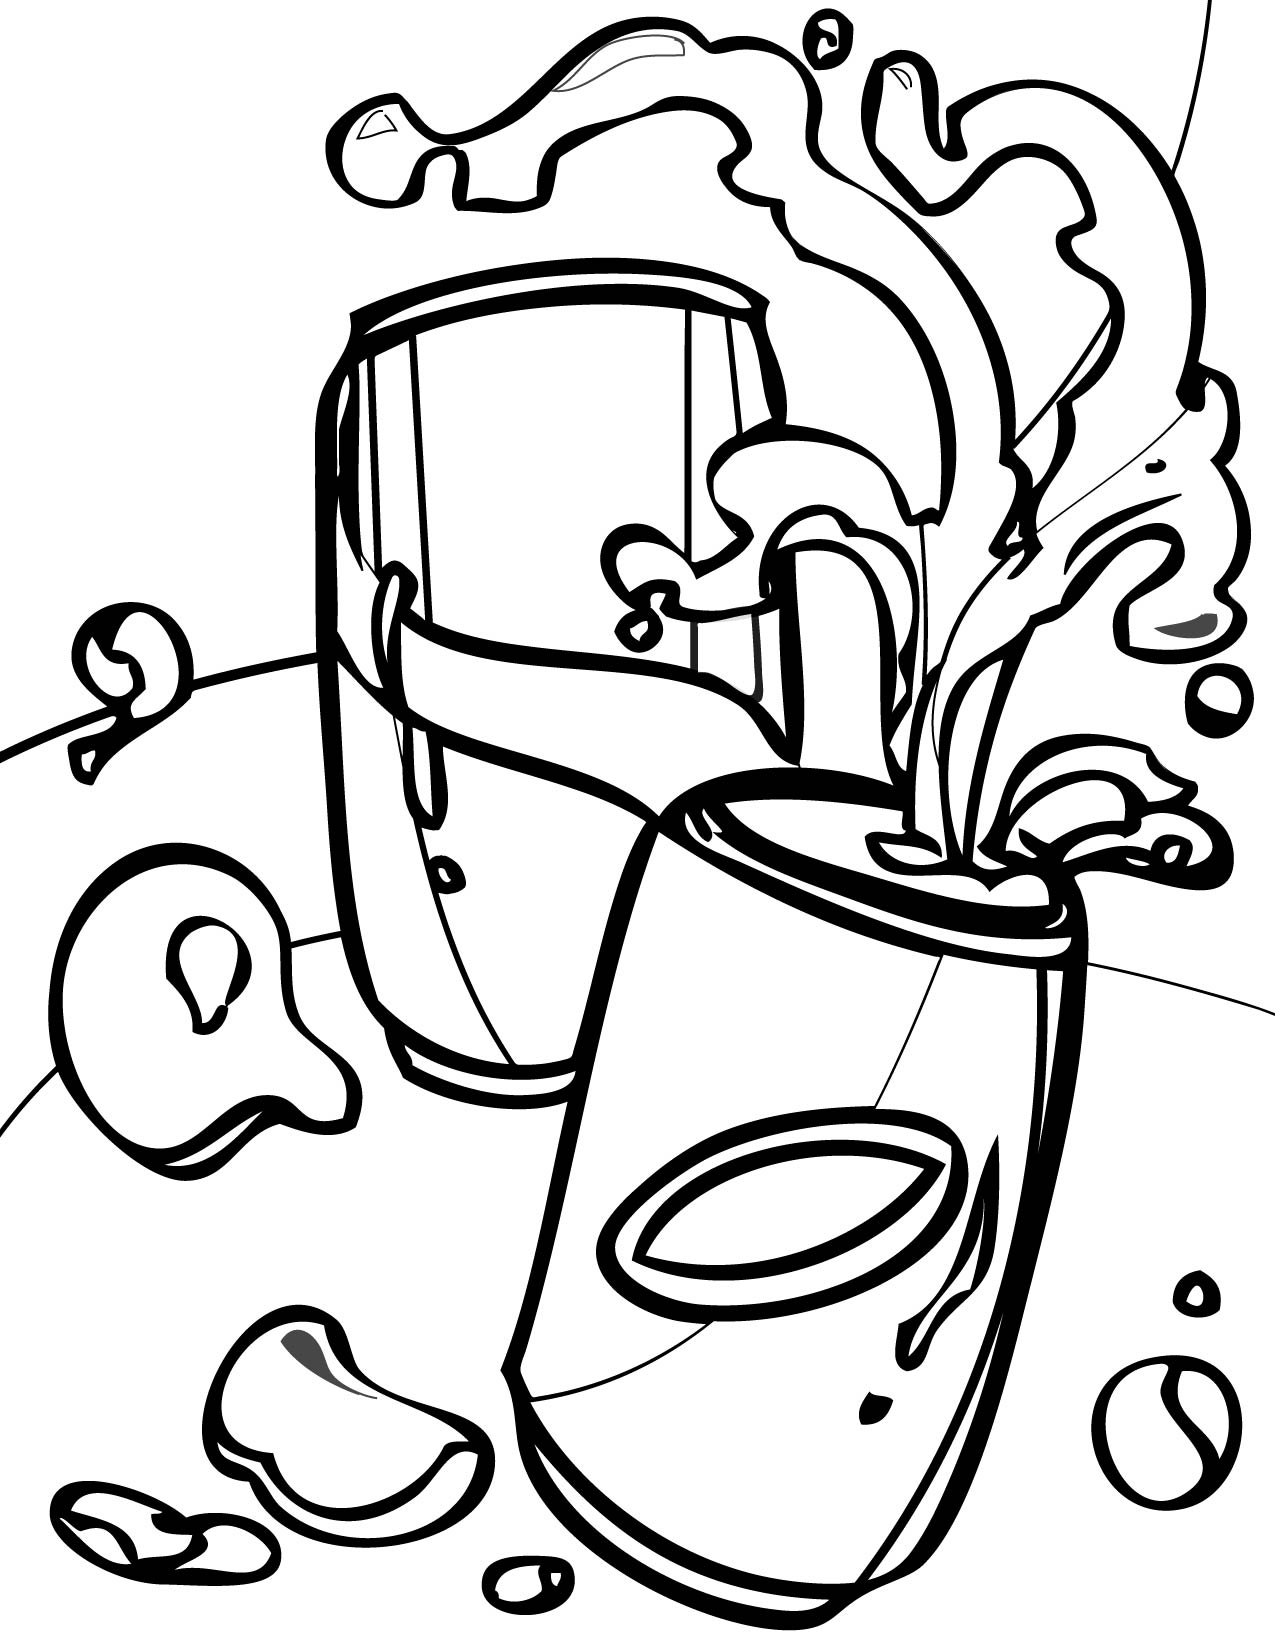 Soda Can Coloring Page At Getcolorings